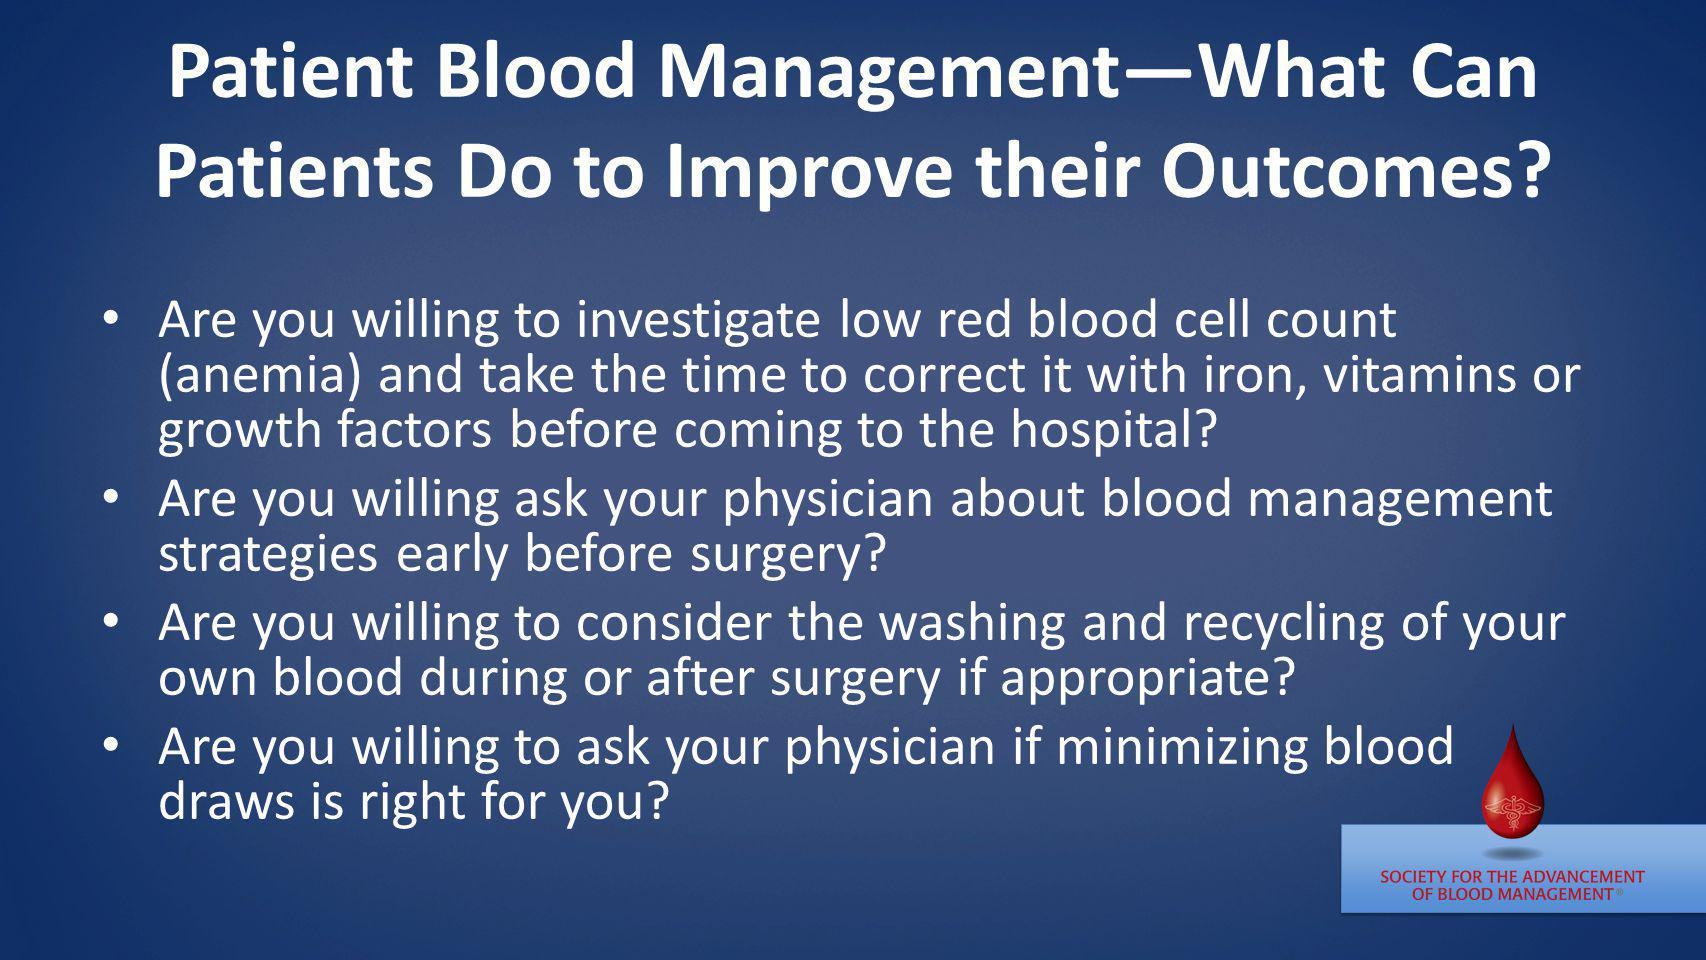 Patient Blood Management—What Can Patients Do to Improve their Outcomes